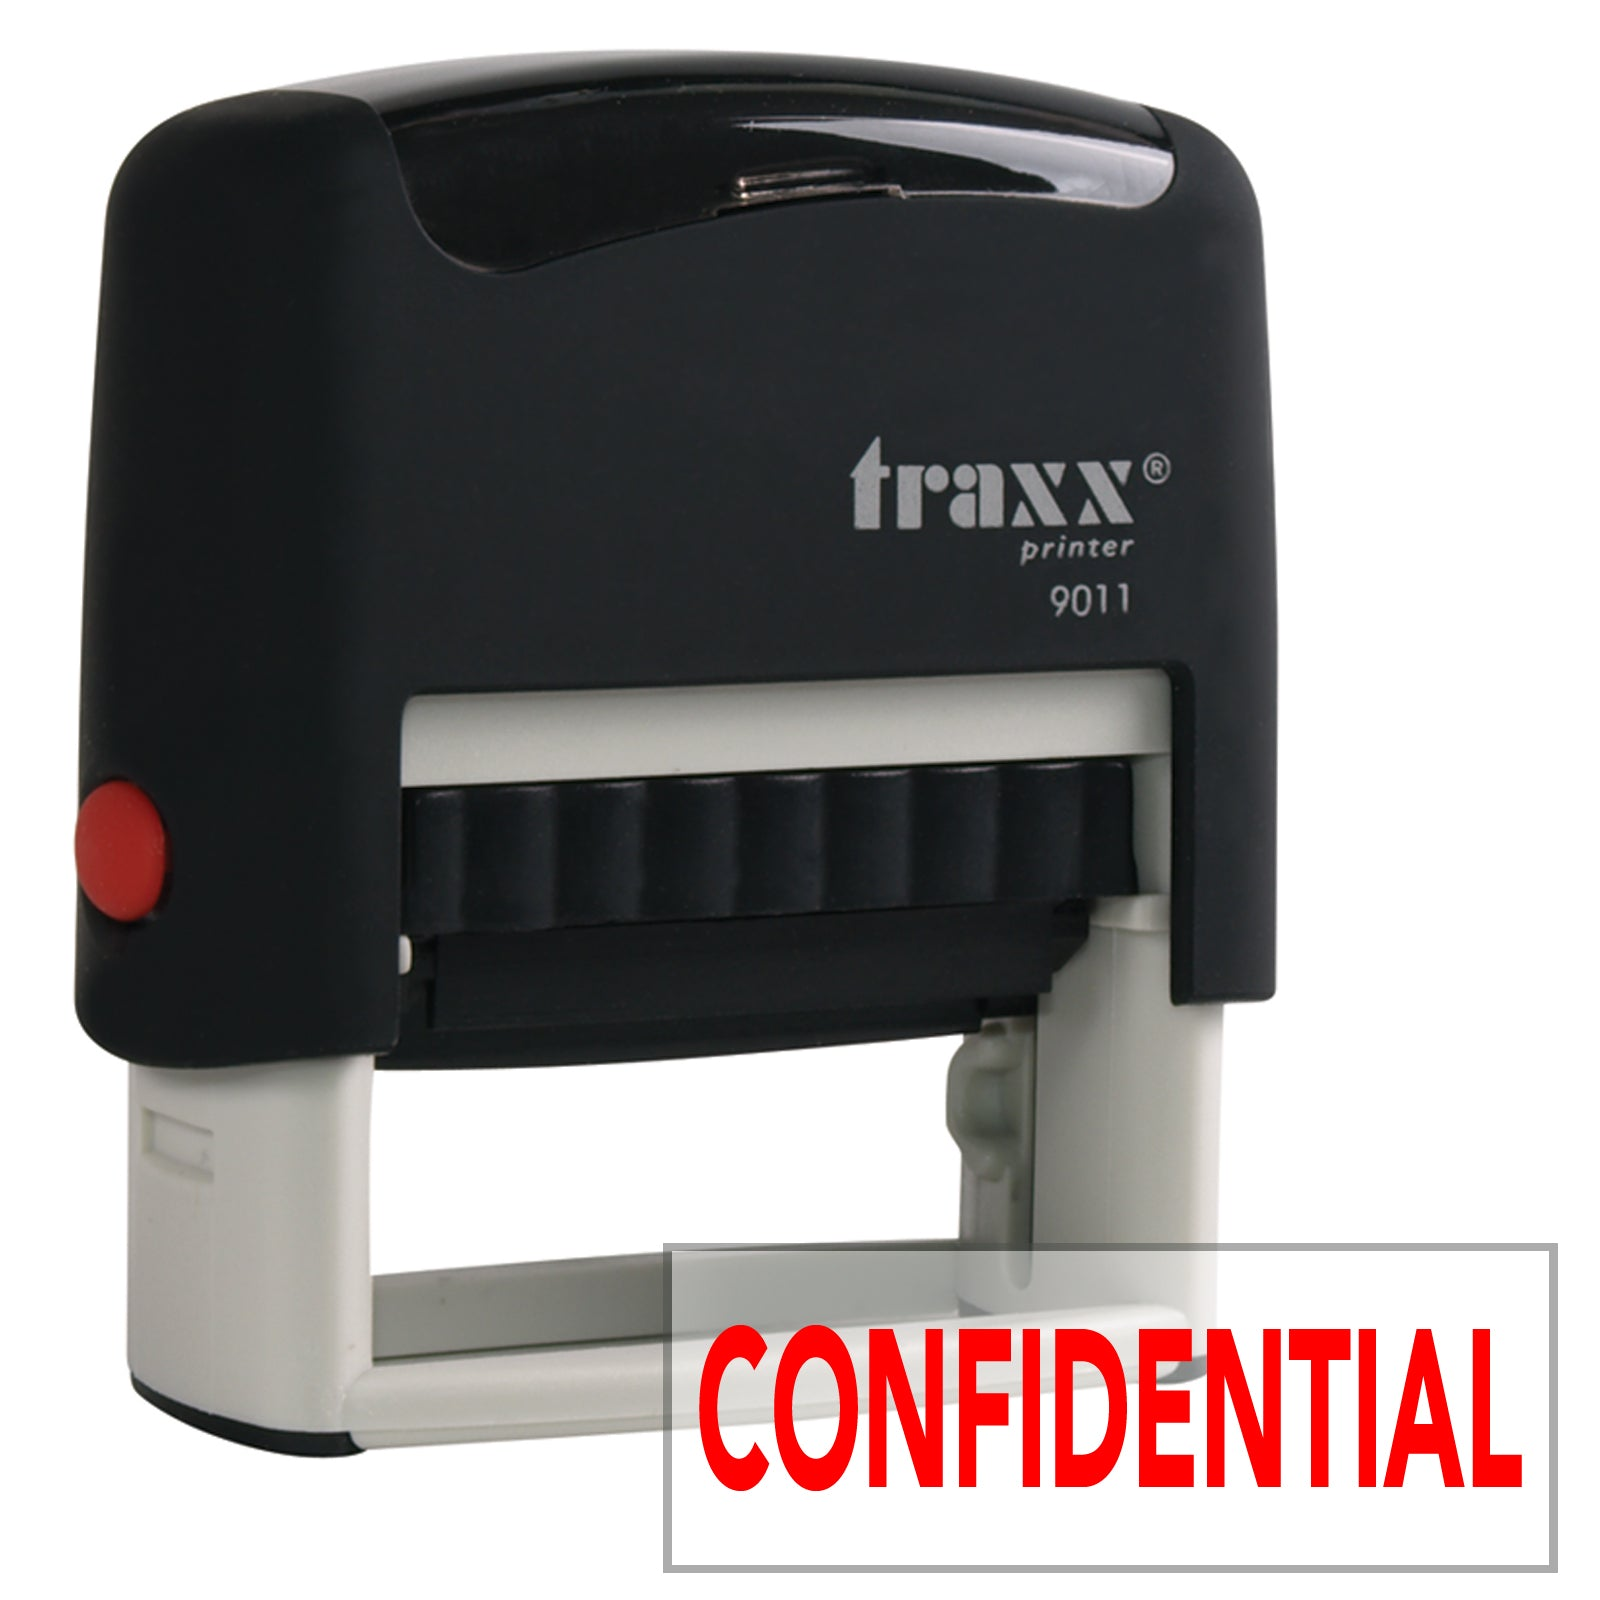 Traxx 9011 38 x 14mm Word Stamp - CONFIDENTIAL